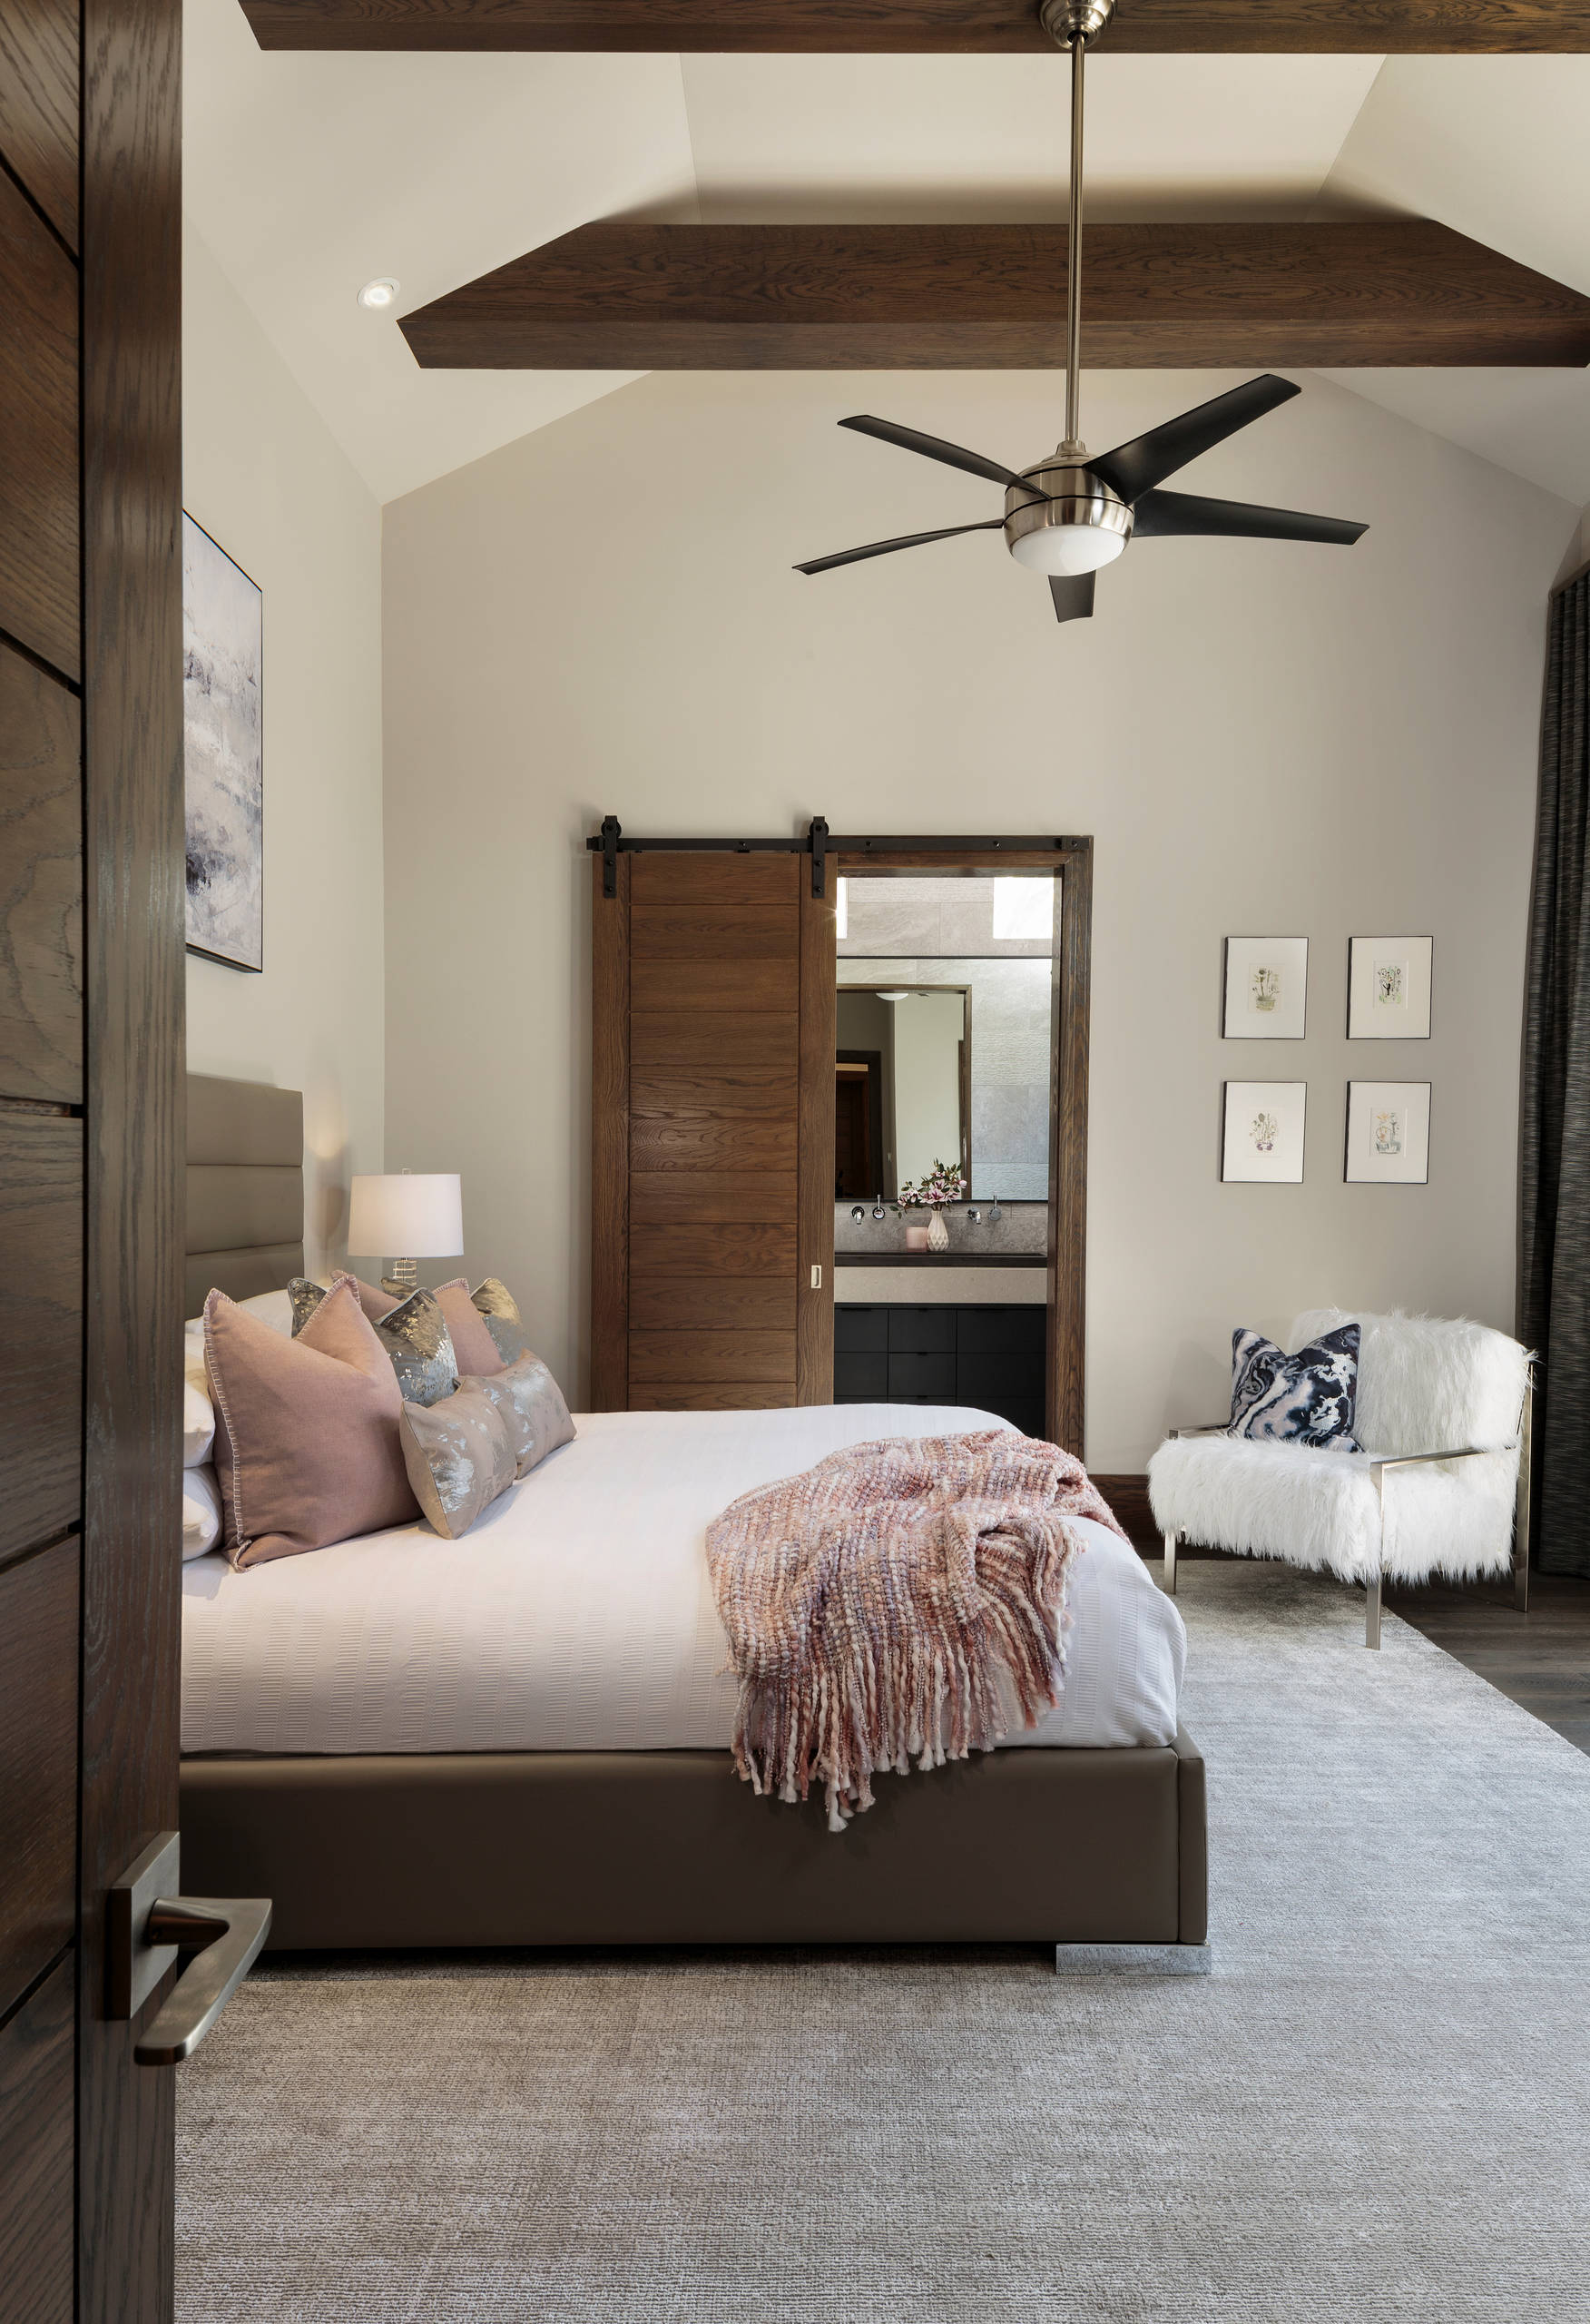 75 Beautiful Modern Bedroom Pictures Ideas October 2020 Houzz